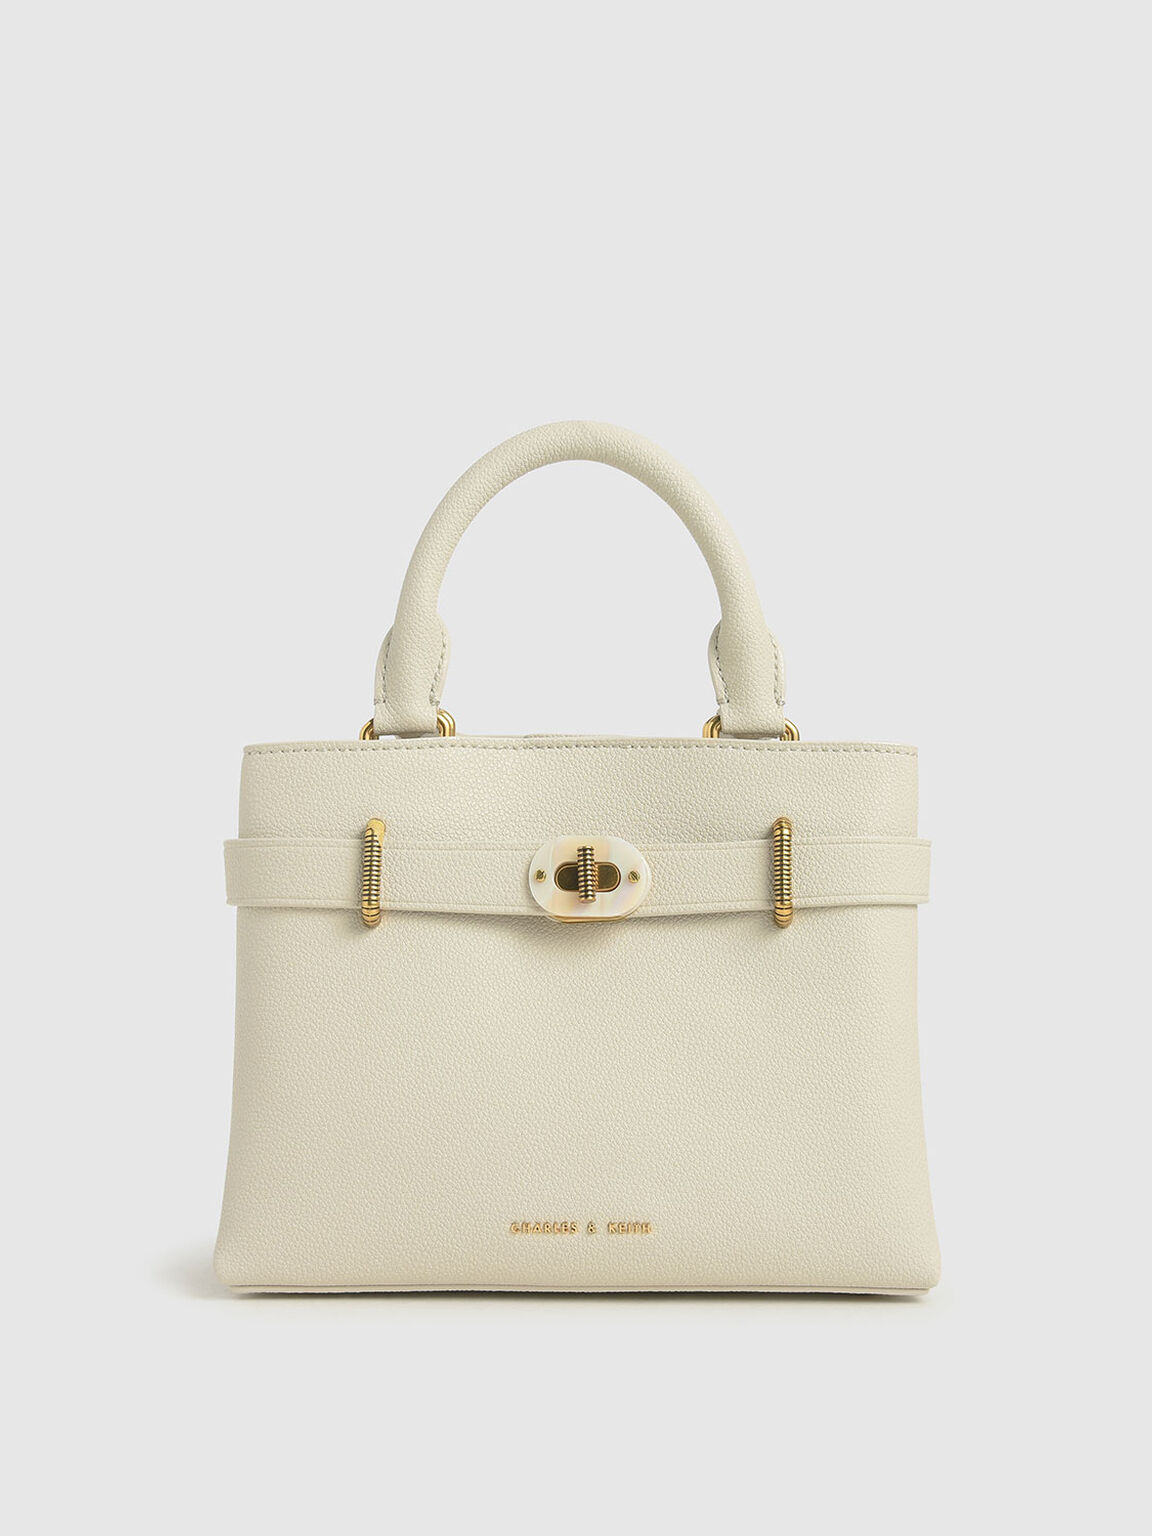 Turn-Lock Tote Bag, Cream, hi-res